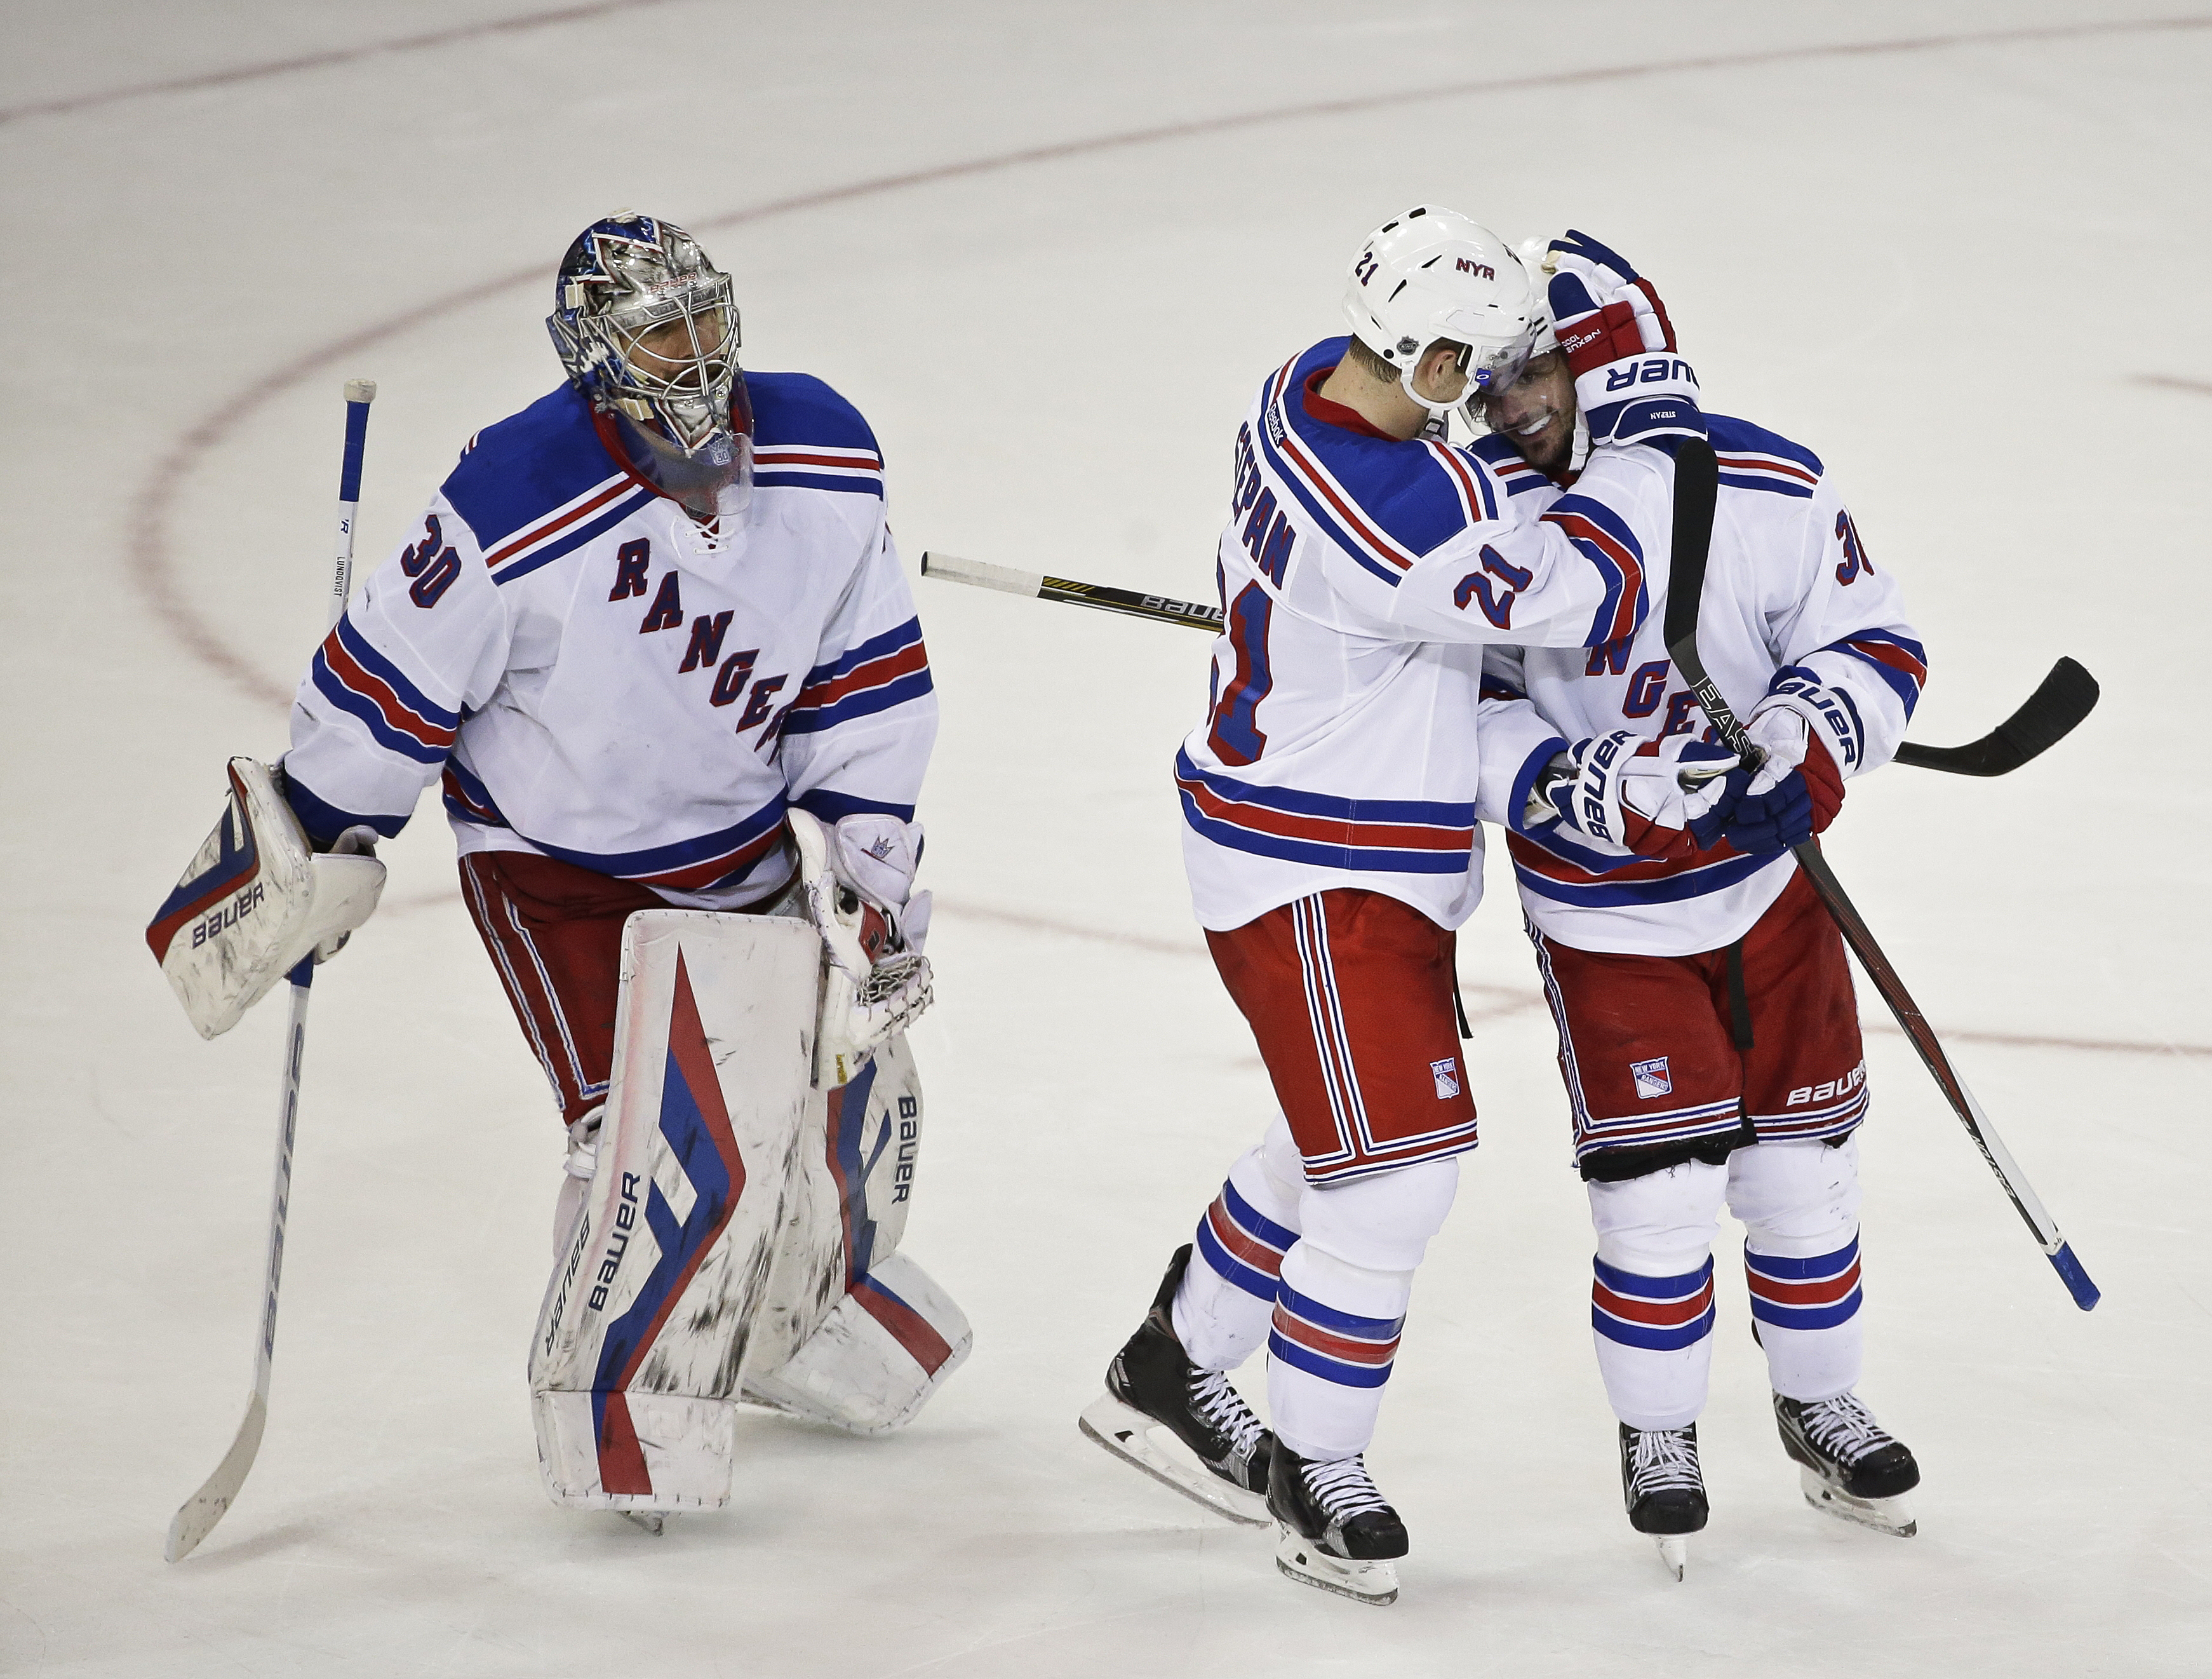 New York Rangers goalie Henrik Lundqvist (30) and Derek Stepan (21) celebrate with Mats Zuccarello (36) after Zuccarello scored a goal during overtime in an NHL hockey game against the Anaheim Ducks on Tuesday, Dec. 22, 2015, in New York. The Rangers won